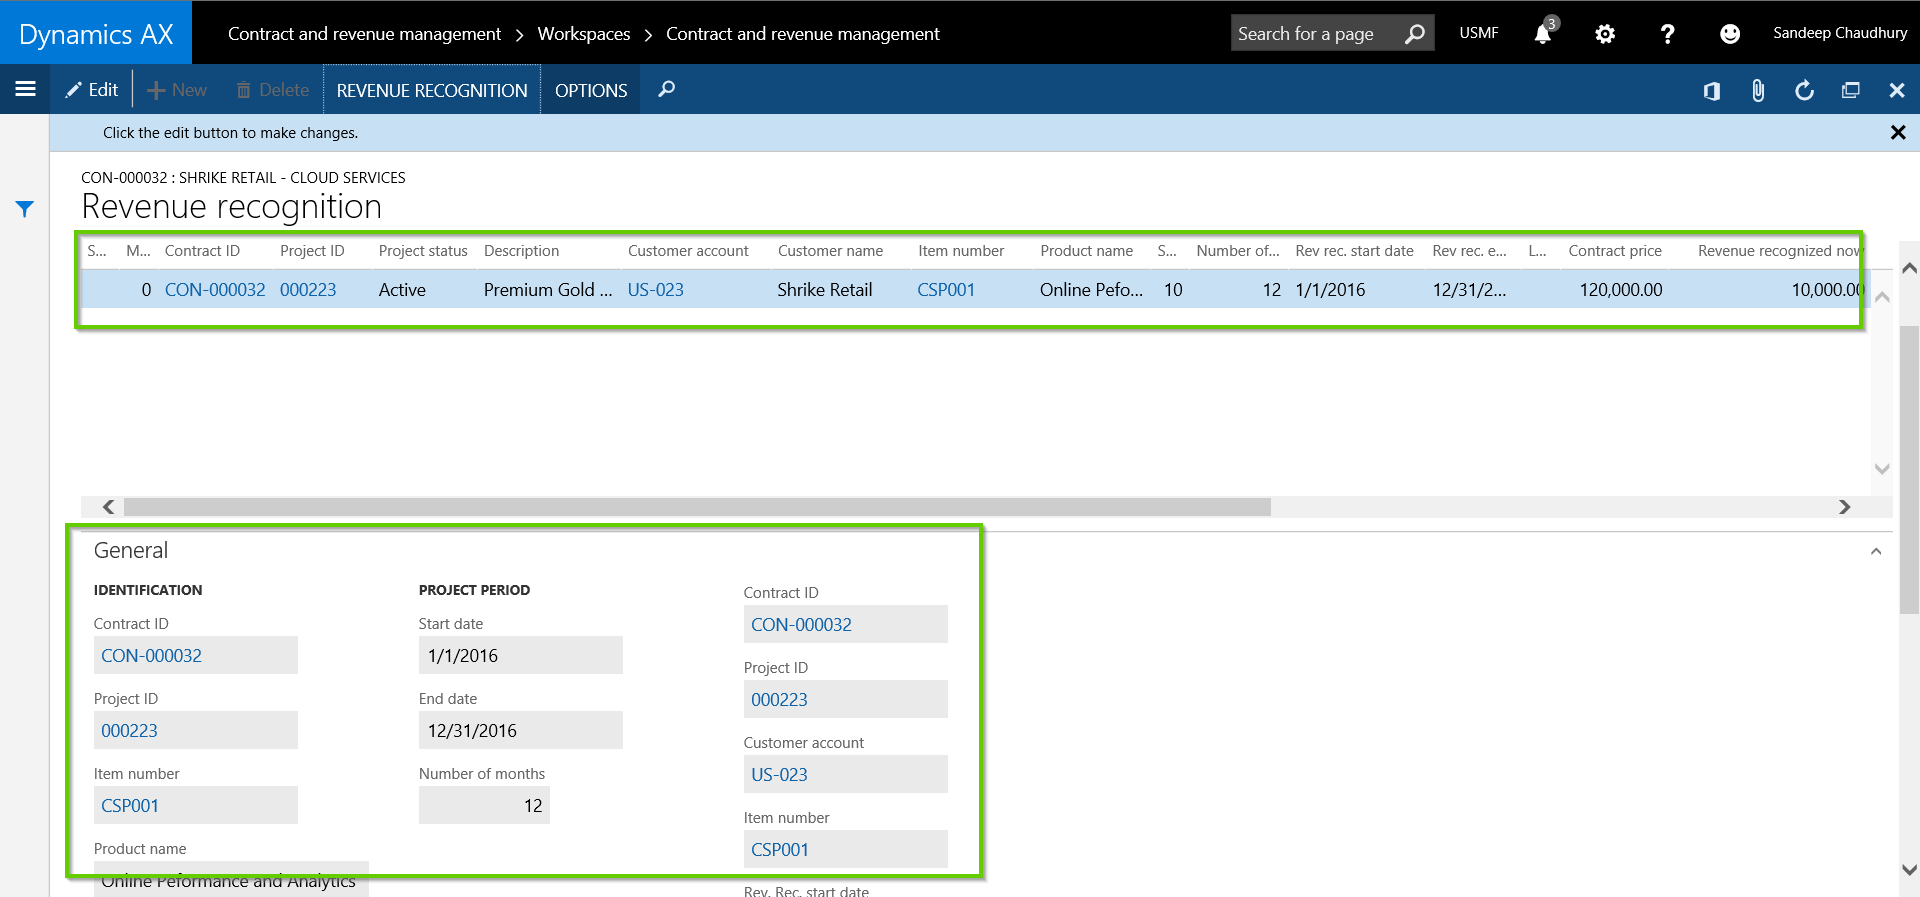 Revenue Recognition Details for Dynamics AX with AXIO